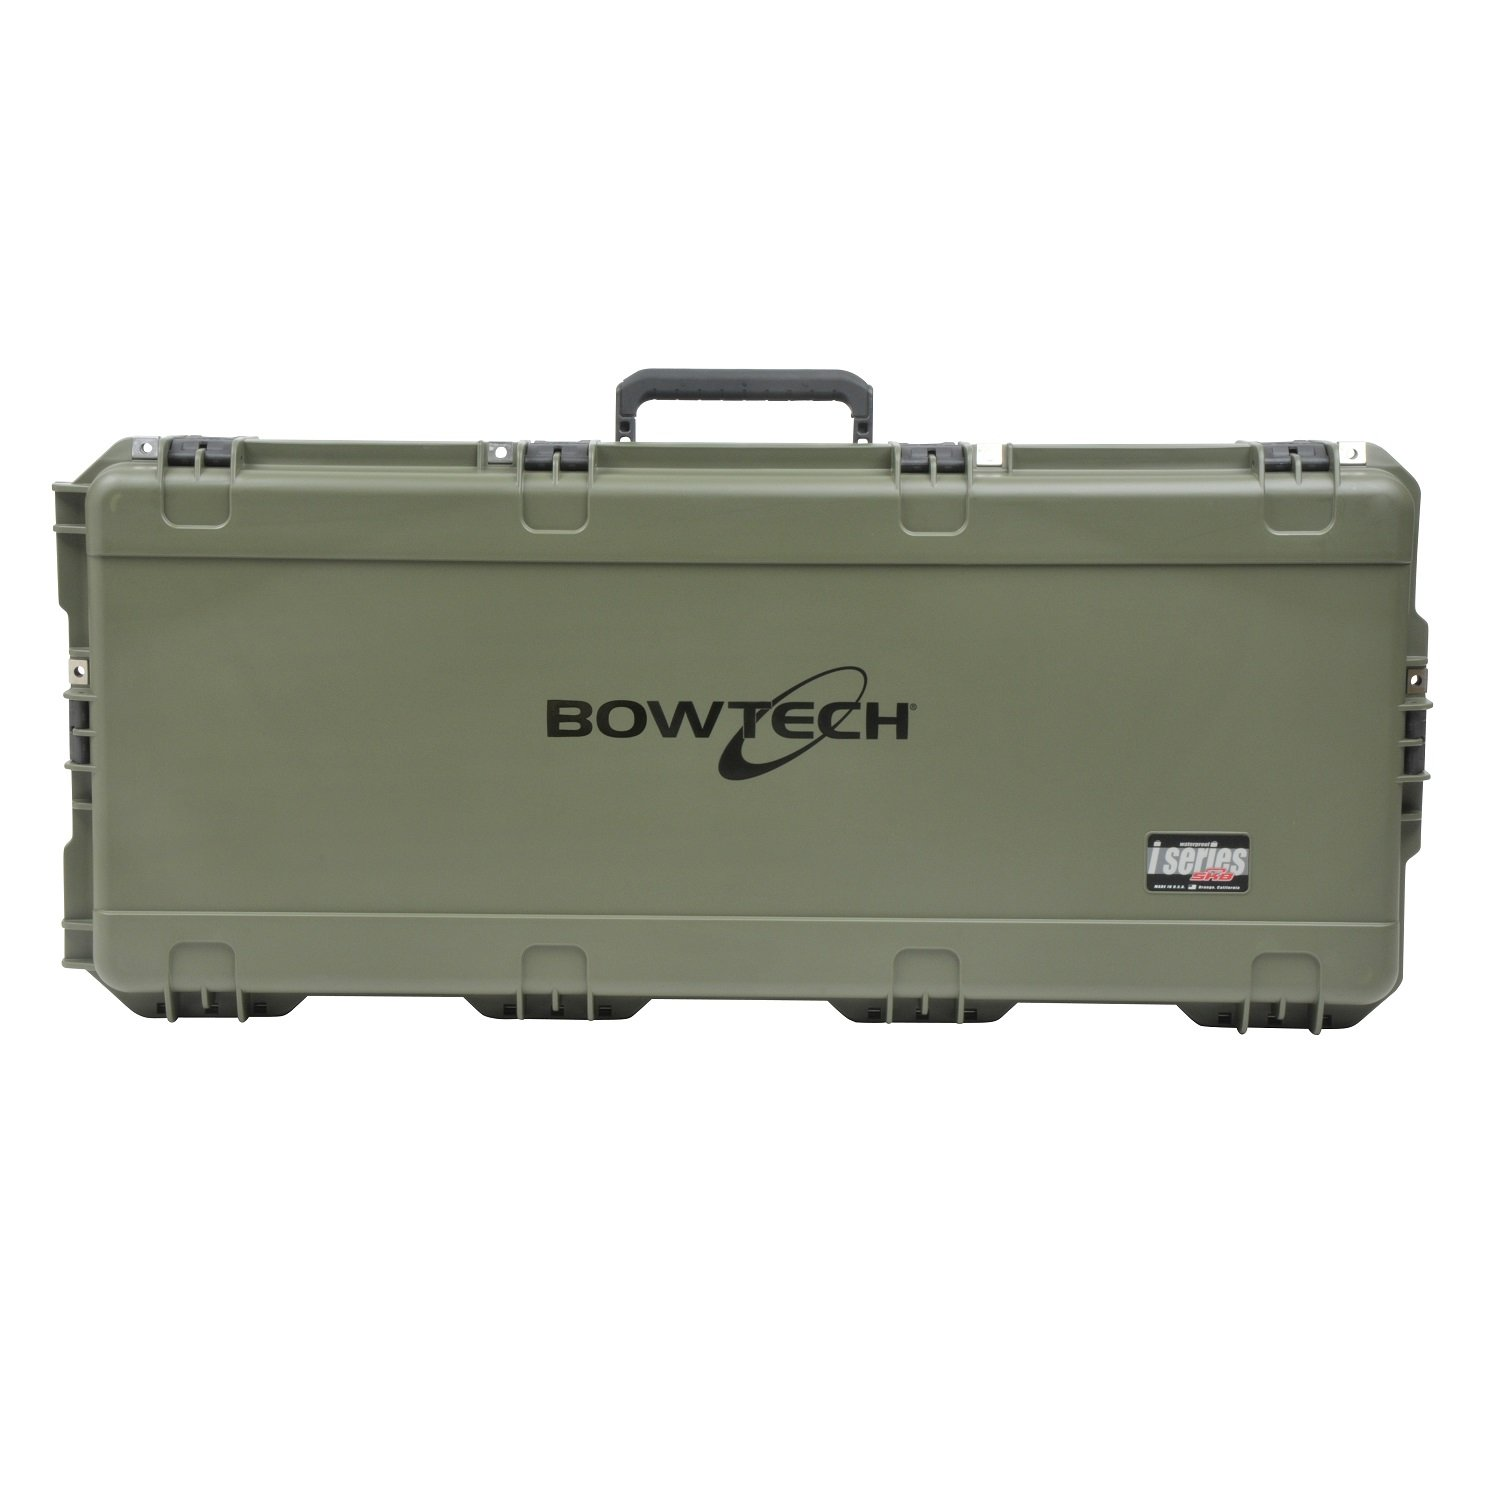 SKB Corp Bowtech Iseries Parallel Limb Single Bow Case, Green, Small